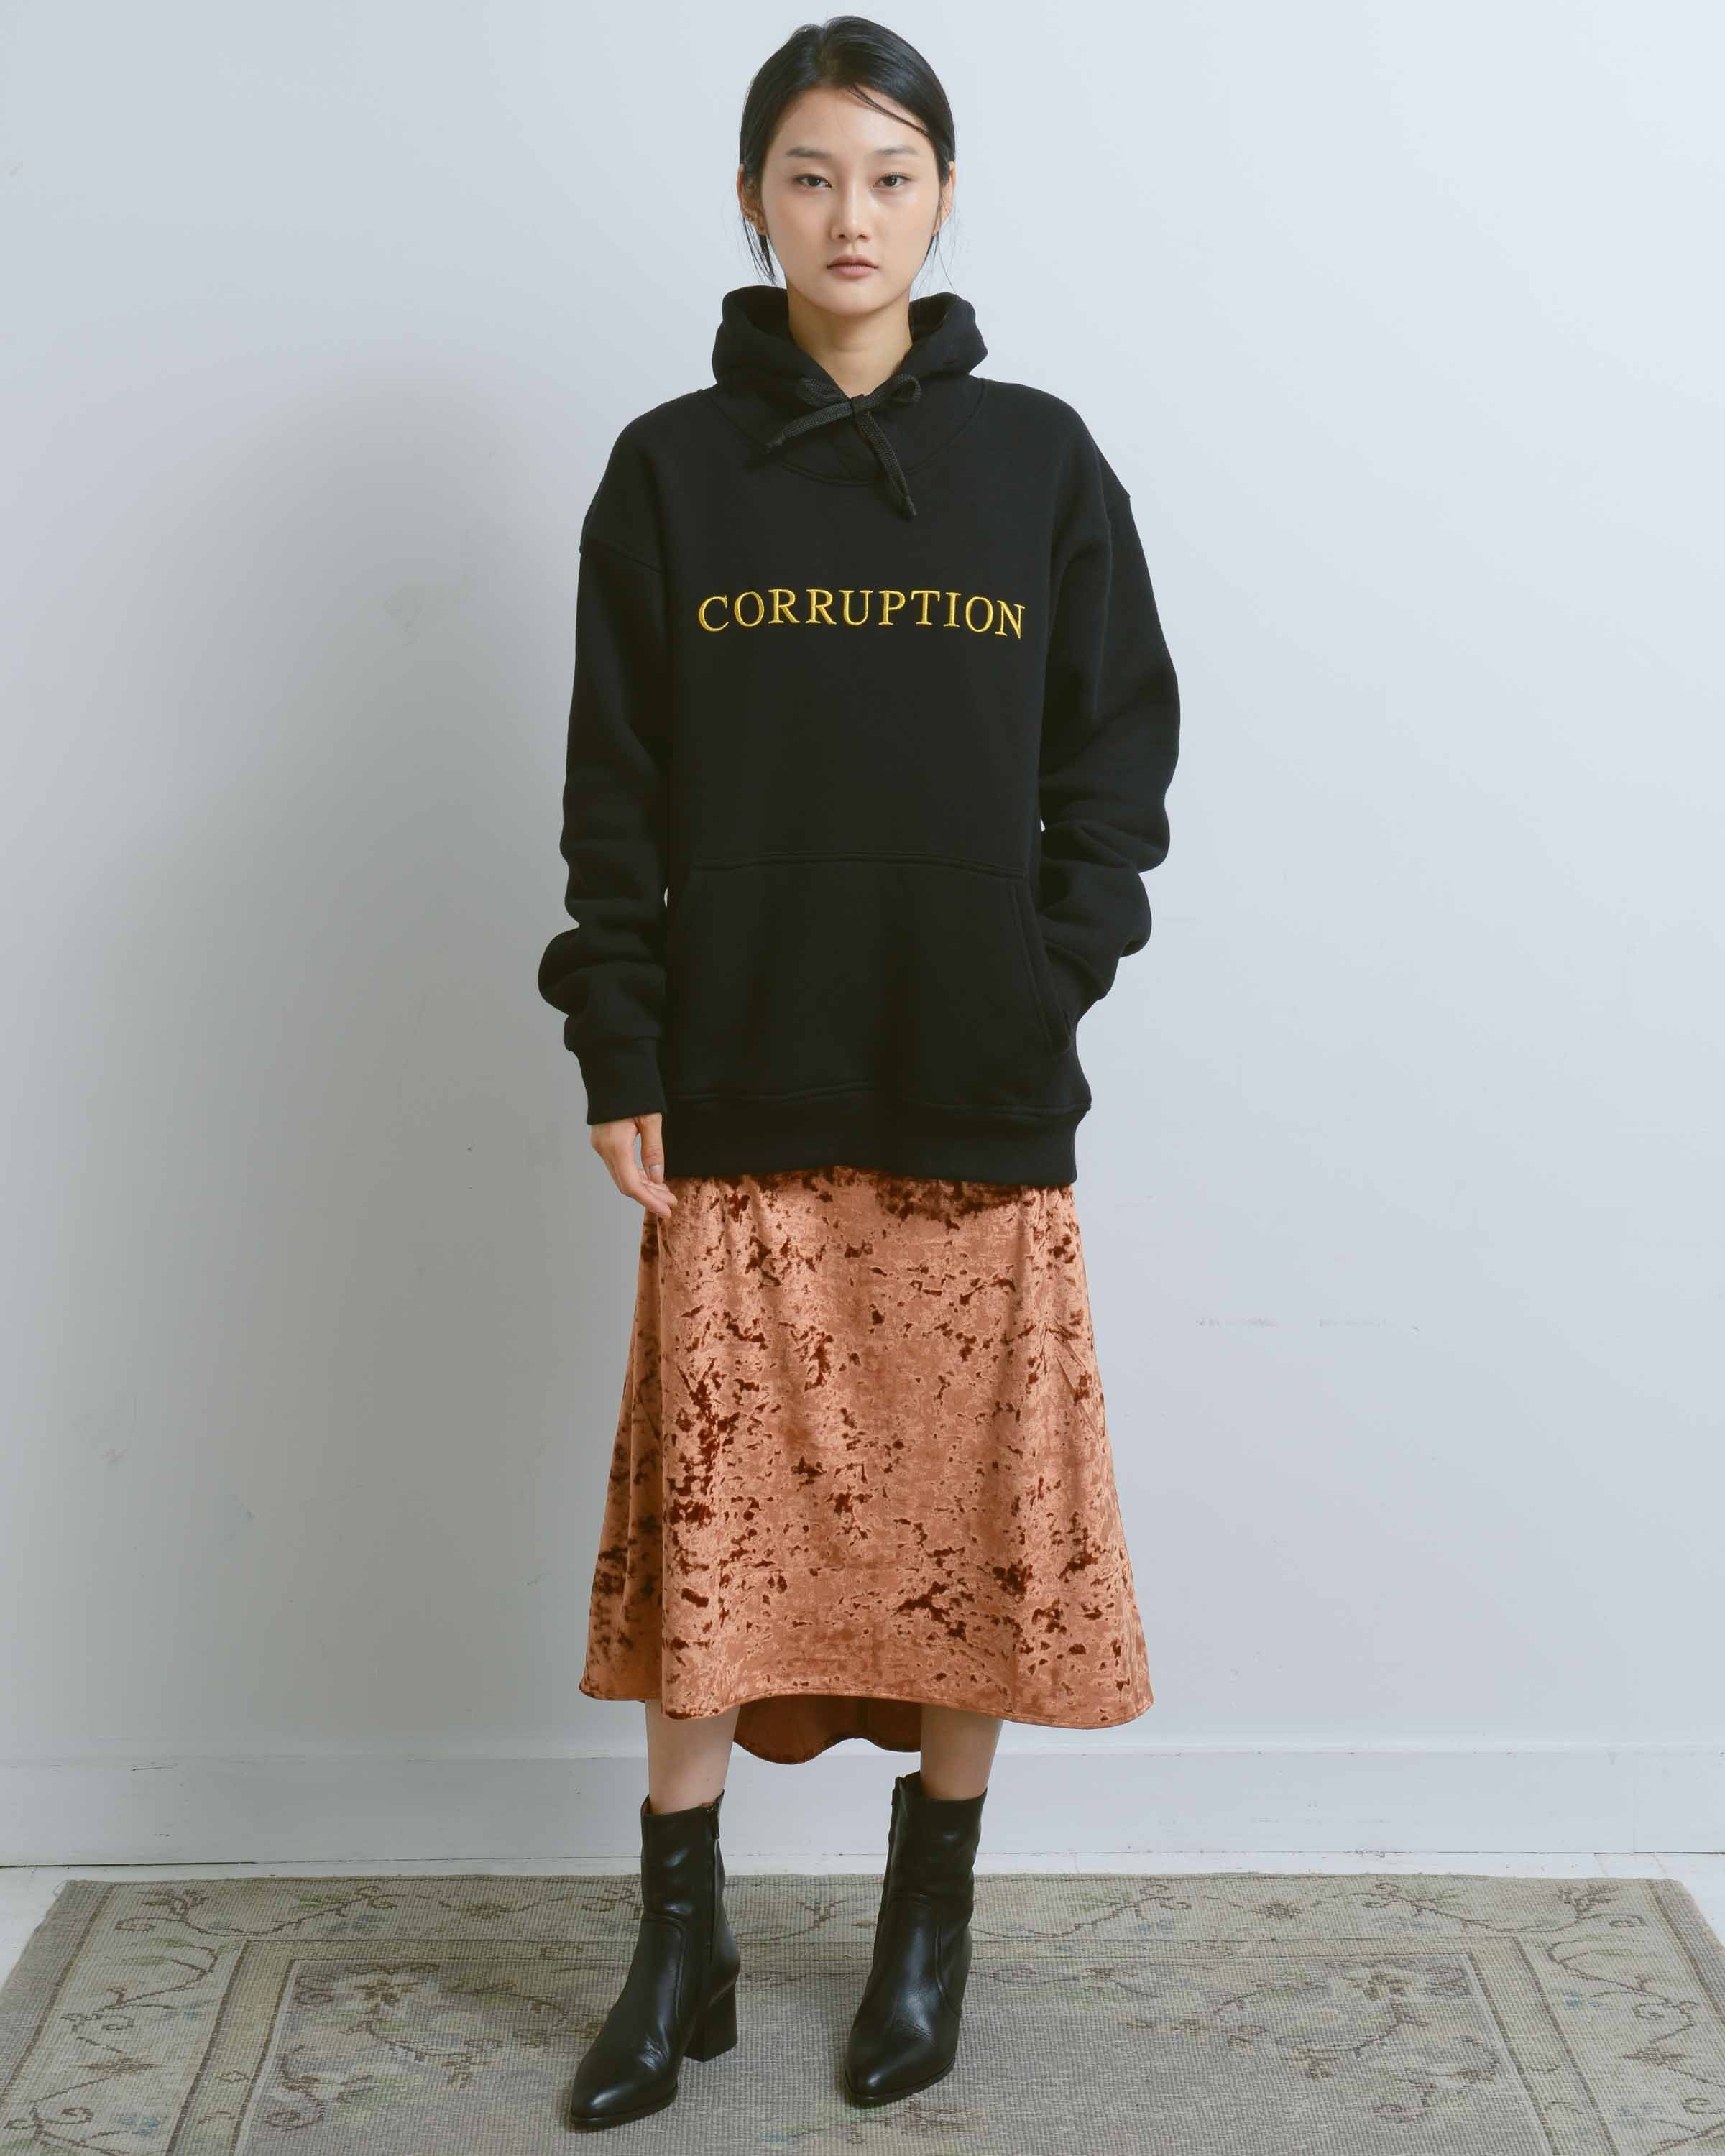 789a1f03 Corruption Hoodie | Products | Hoodies, Kangaroo pouch, Sweaters